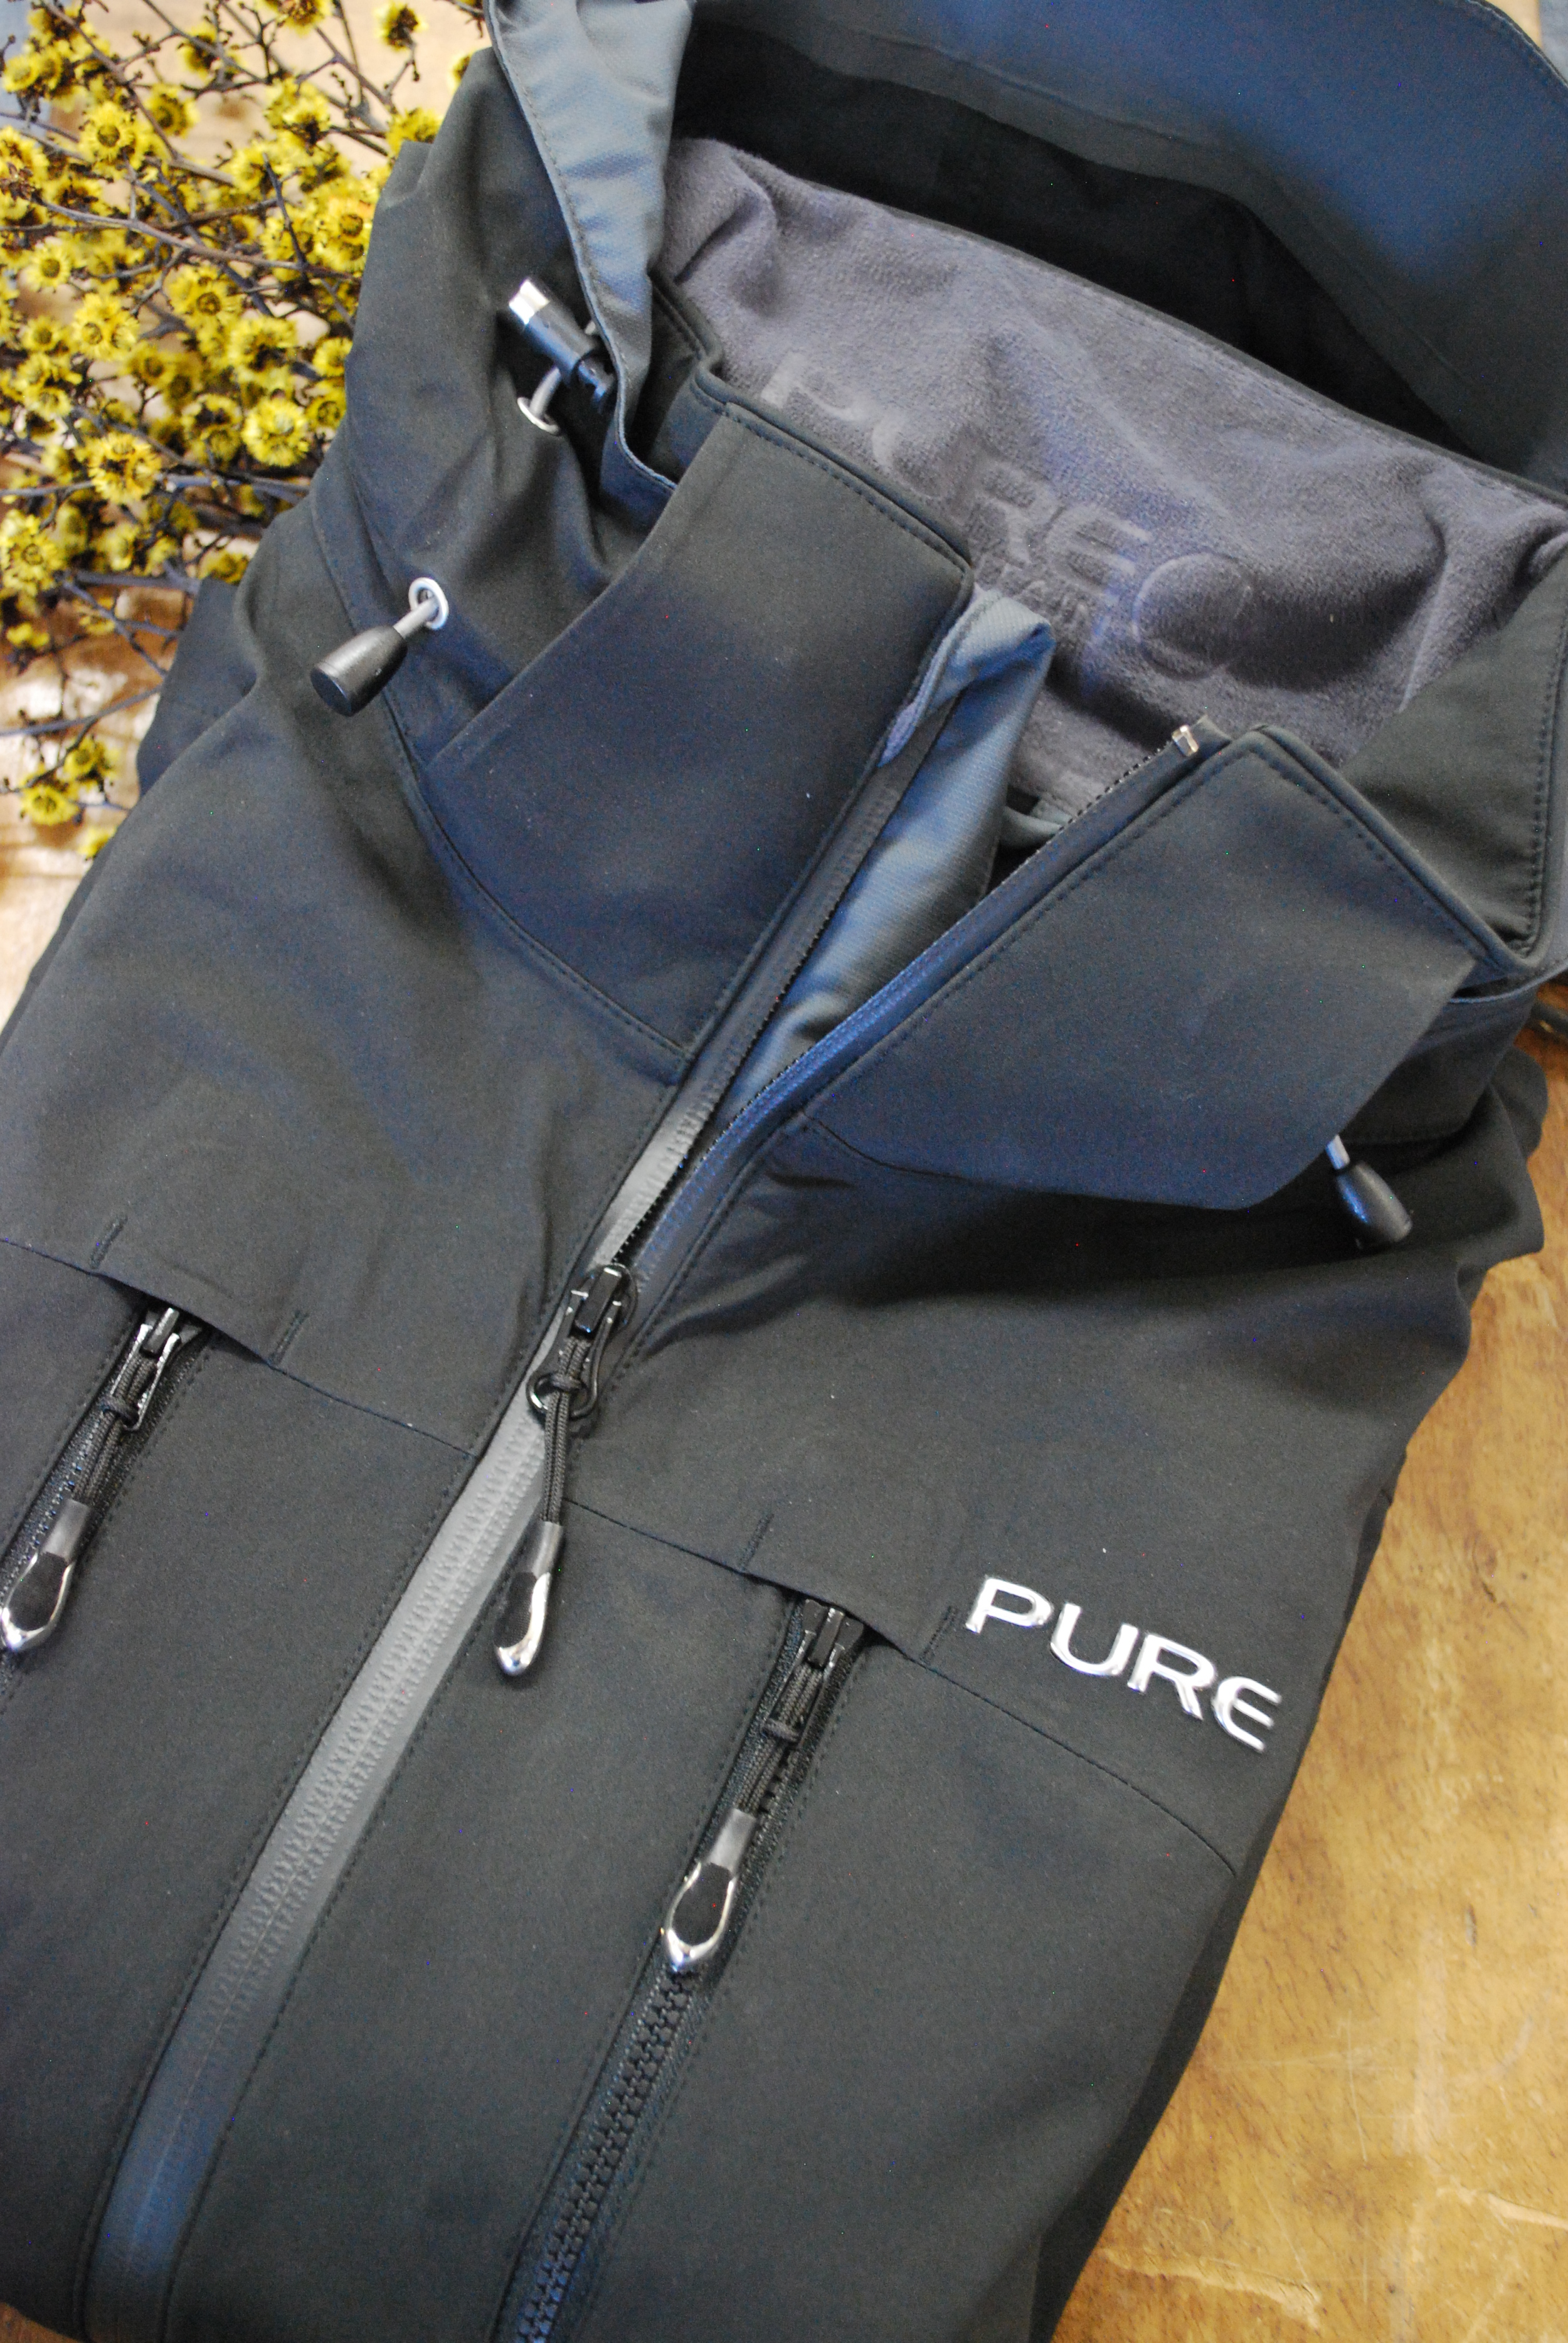 Pure Mountain jacket in black